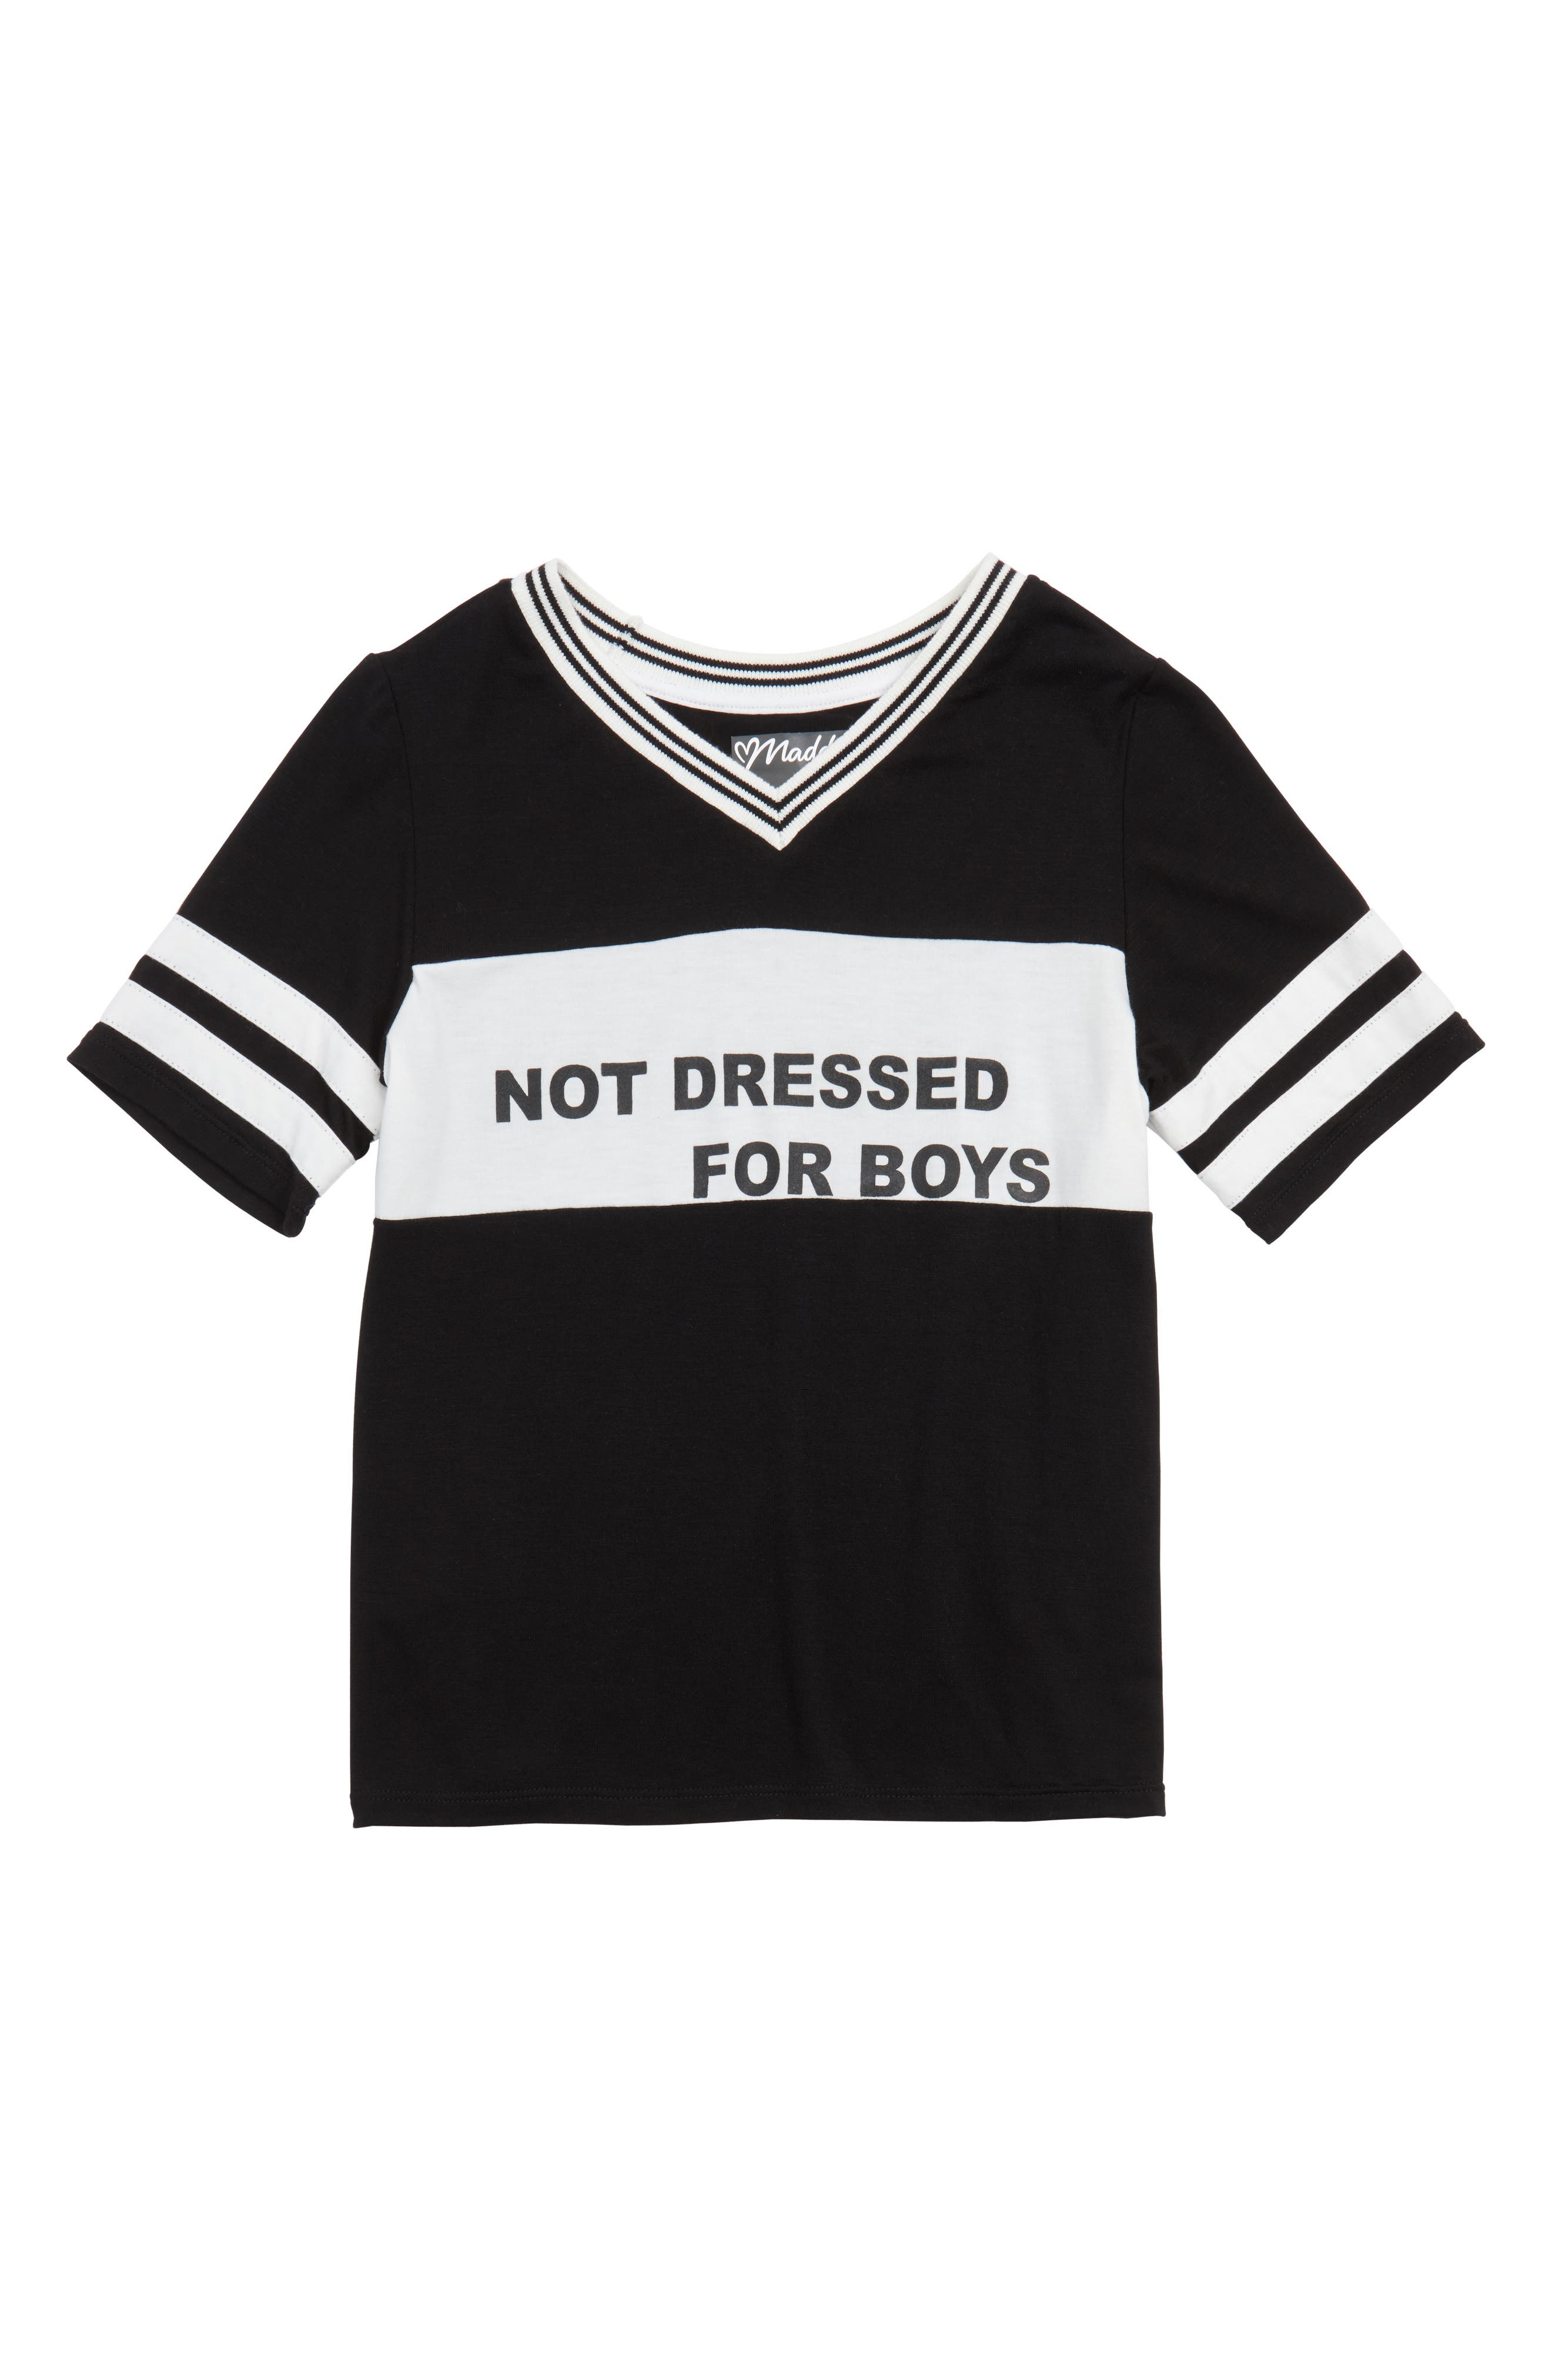 Not Dressed for Boys Tee,                         Main,                         color, Black